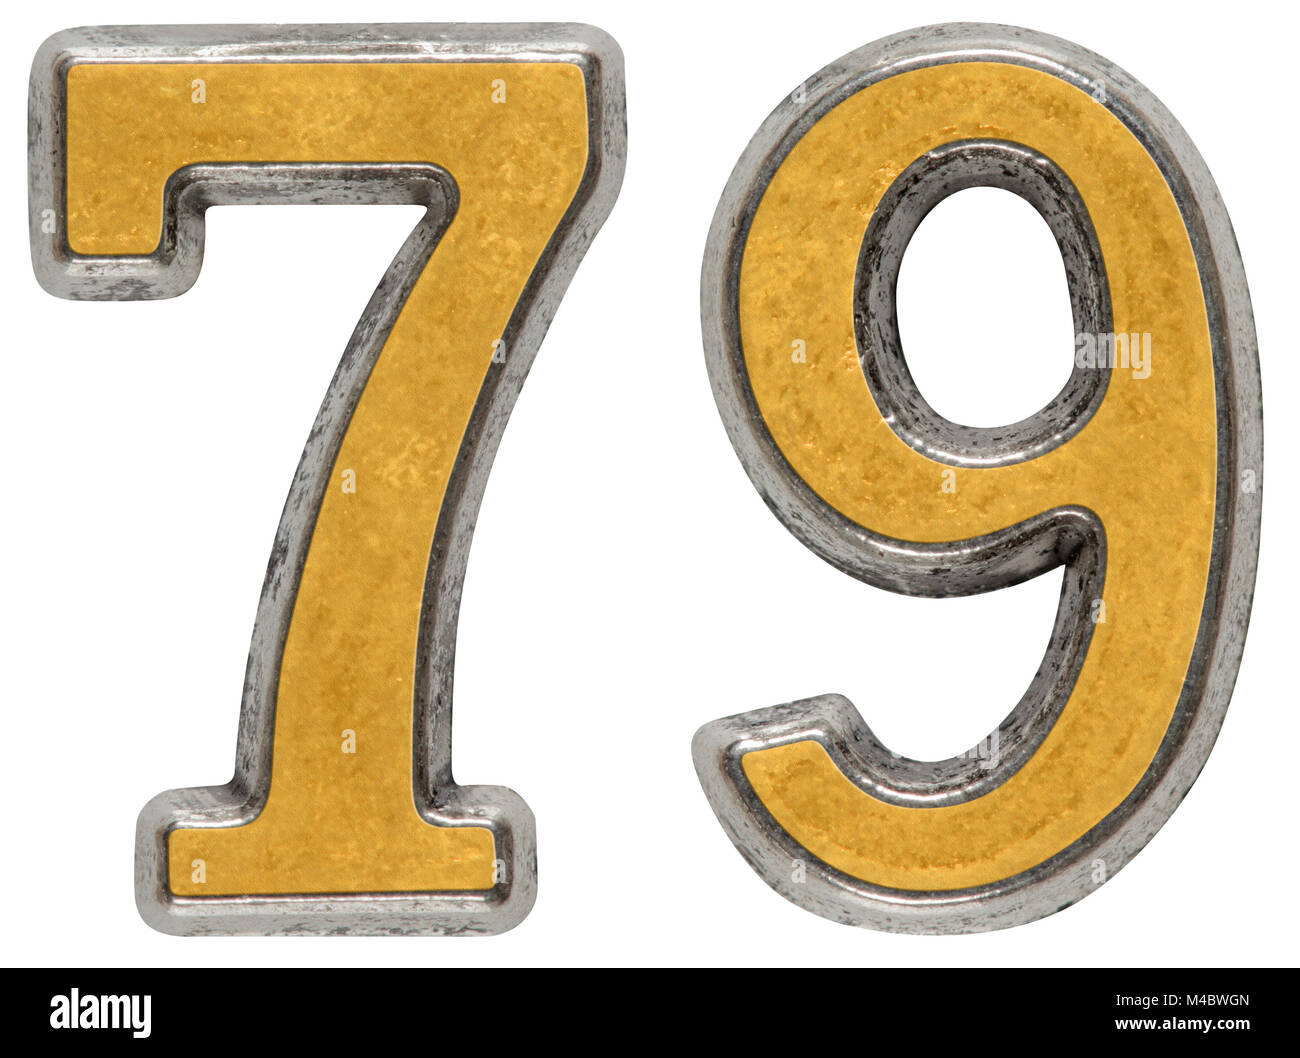 Metal numeral 79, seventy-nine, isolated on white background - Stock Image